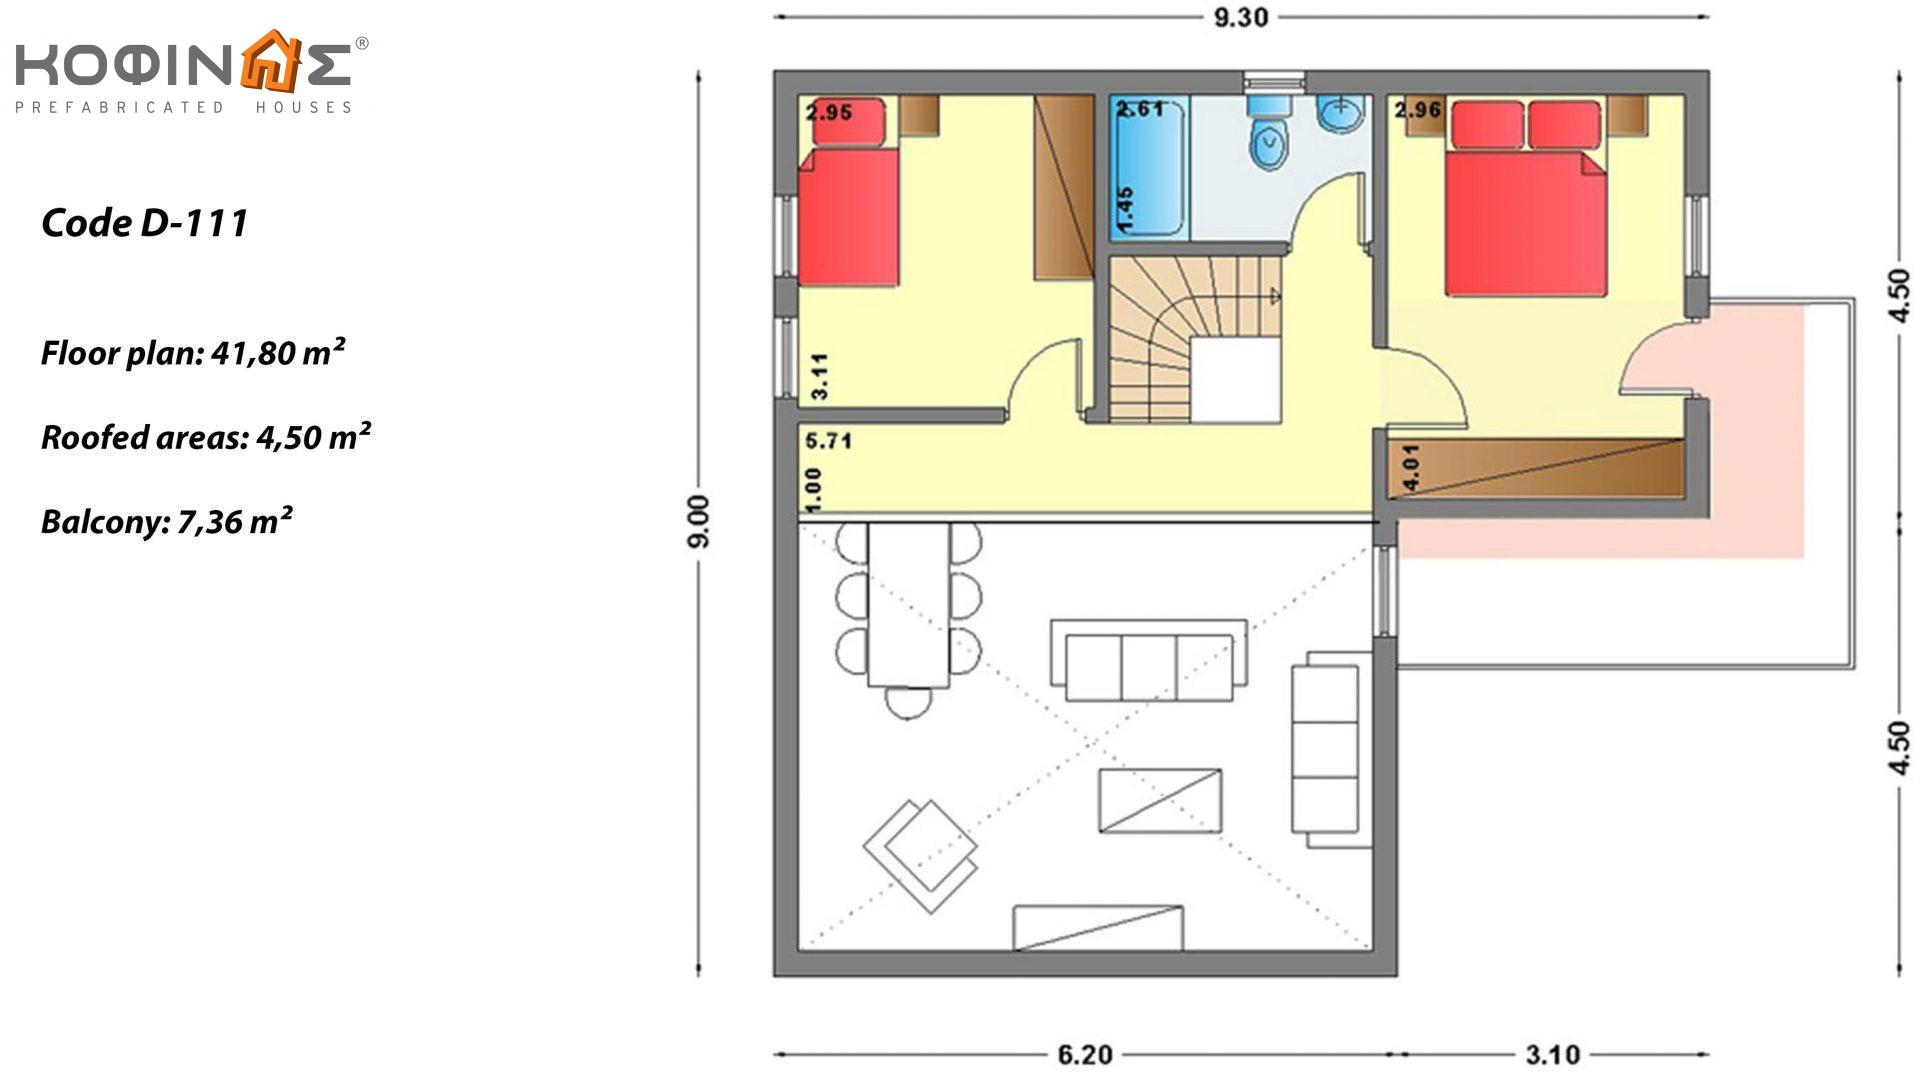 2-story house D-111, total surface of 111,80 m²,roofed areas 11,94 m²,balconies 7,36 m²